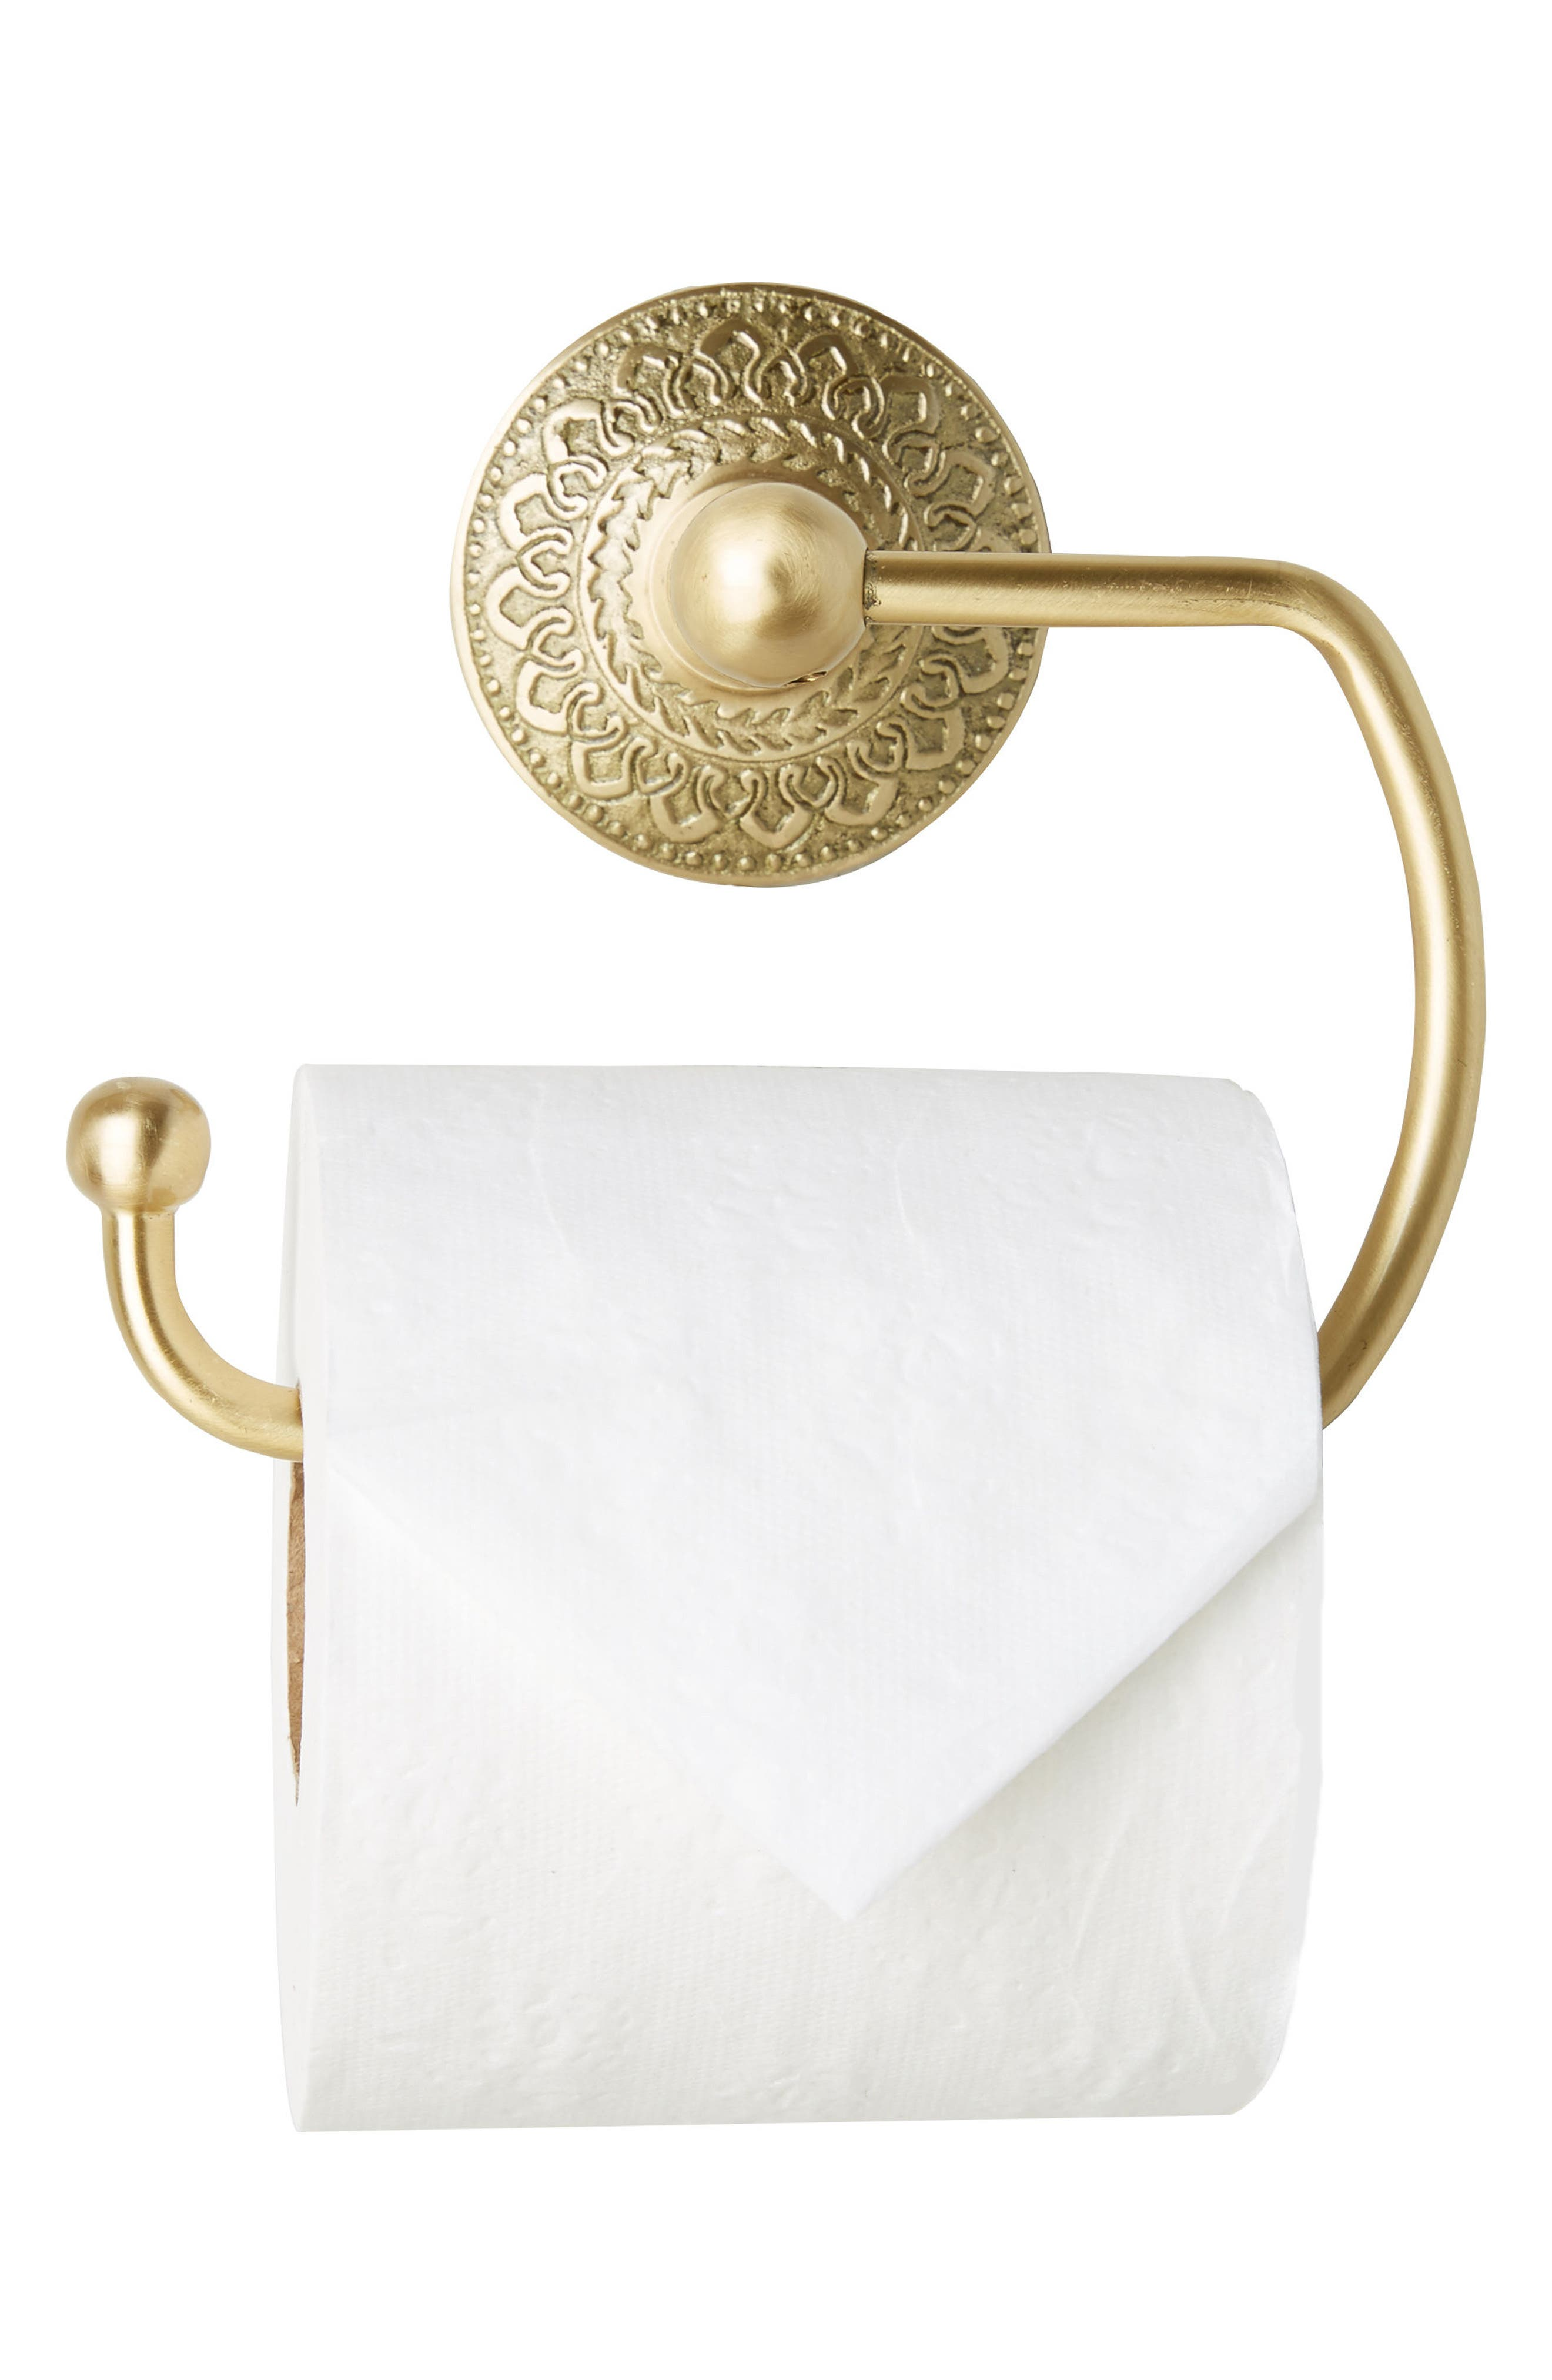 Brass Medallion Toilet Paper Holder,                             Alternate thumbnail 4, color,                             710